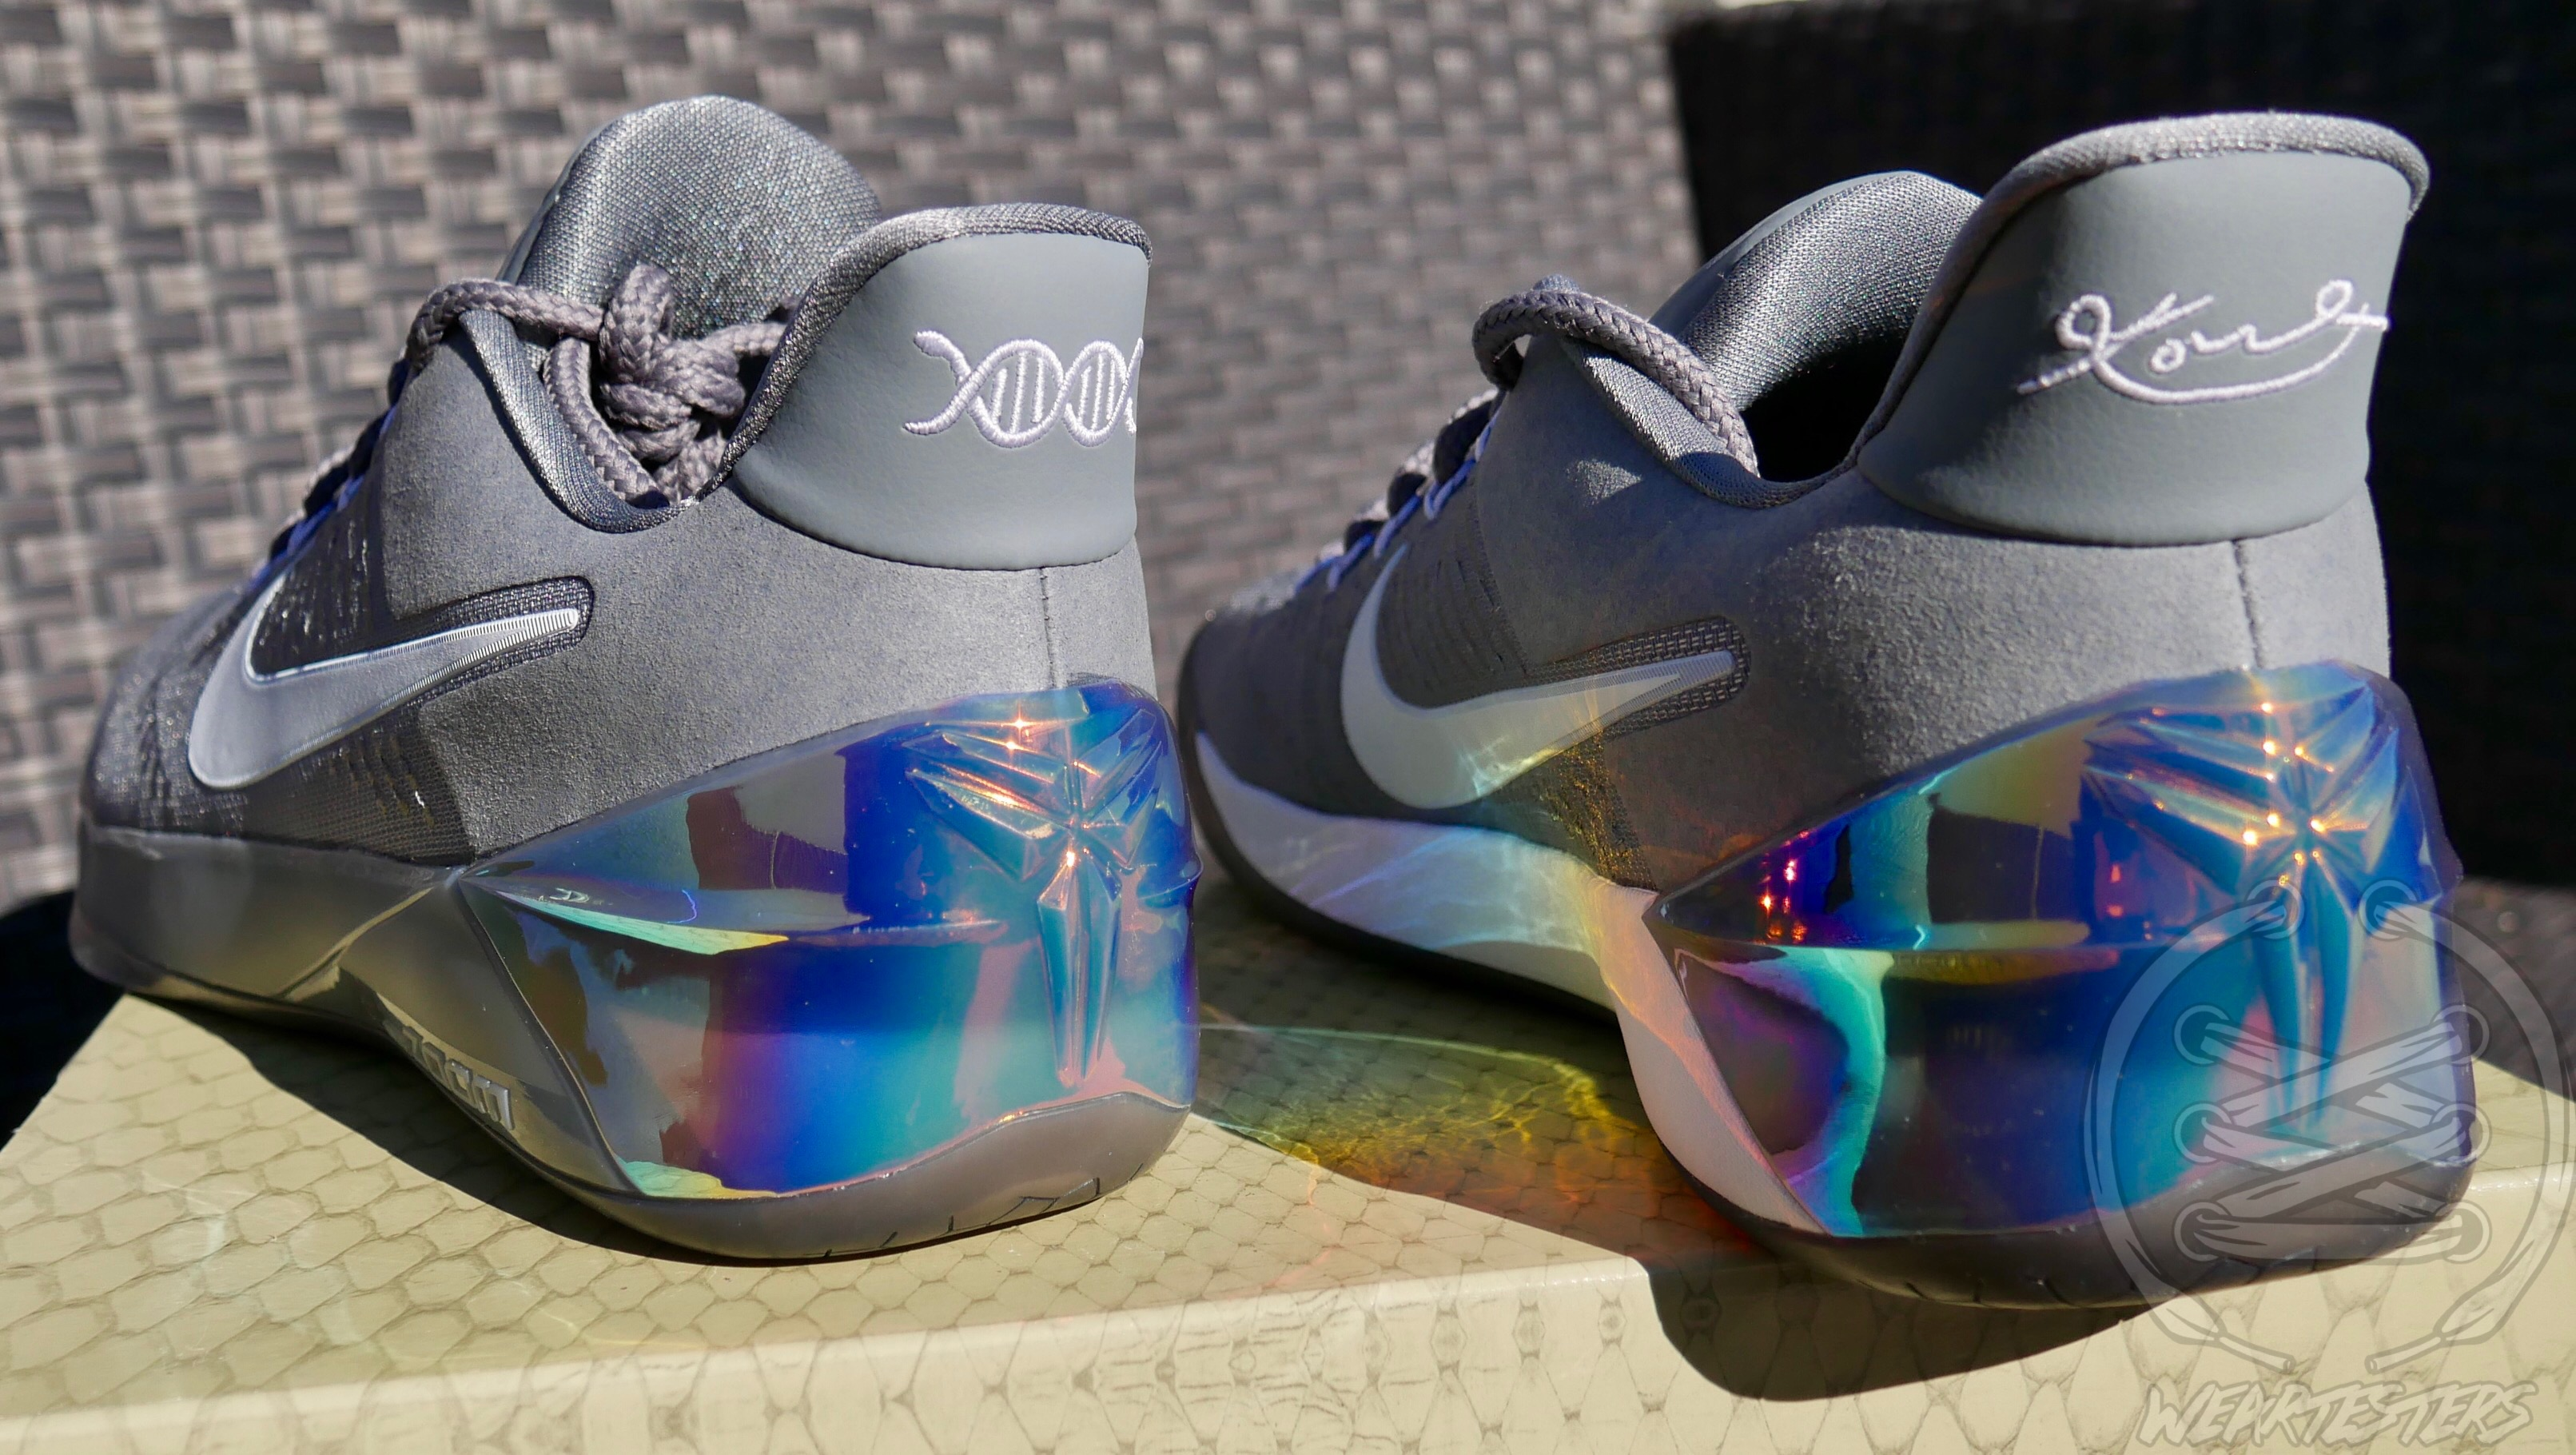 A Detailed Look at the Upcoming Nike Kobe A.D. 'Cool Grey' - Page 2 of 2 - WearTesters